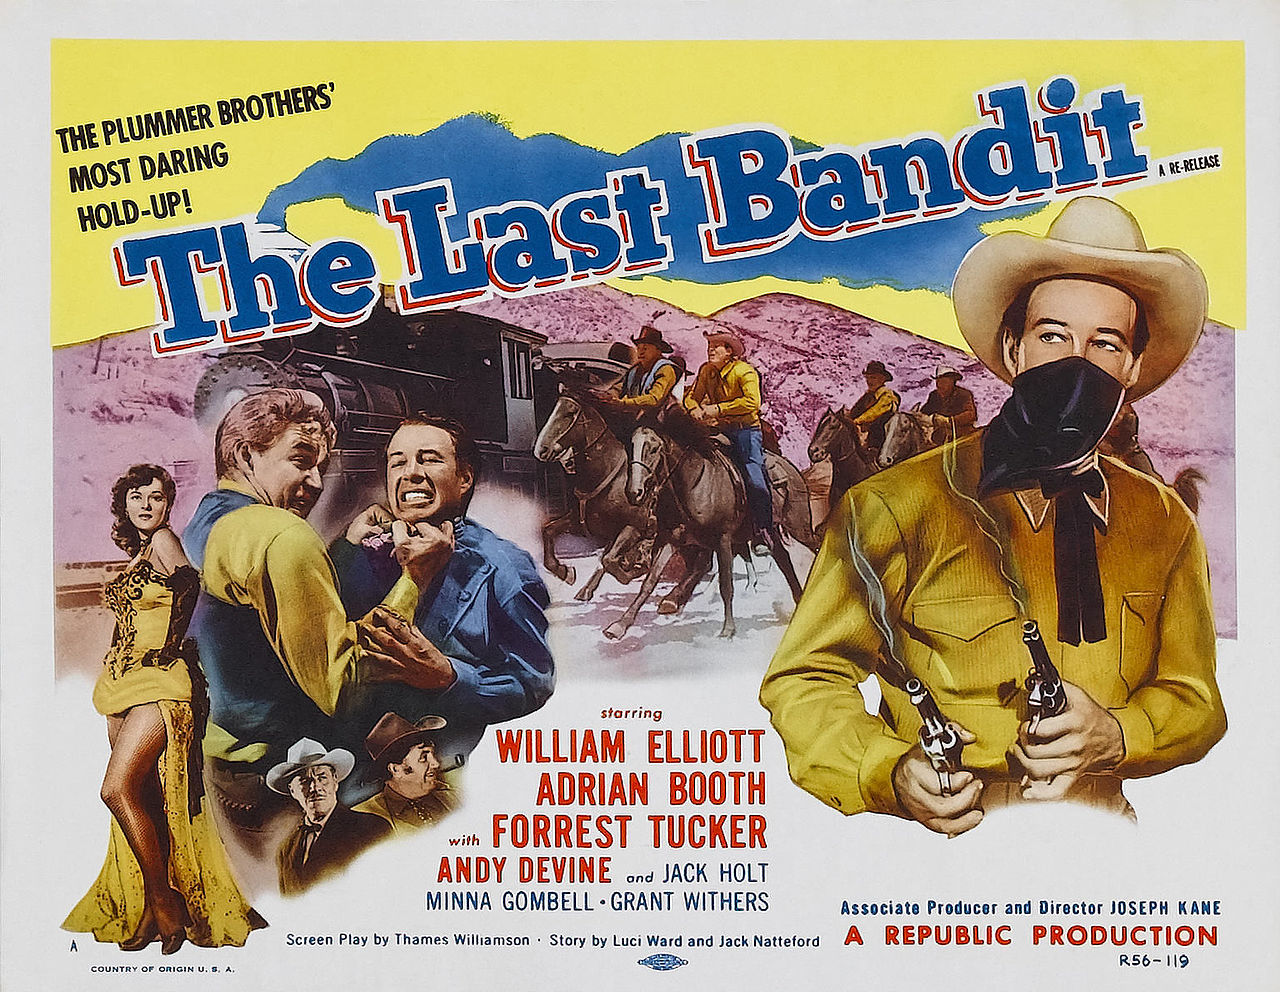 1280px-Poster_-_Last_Bandit,_The_01.